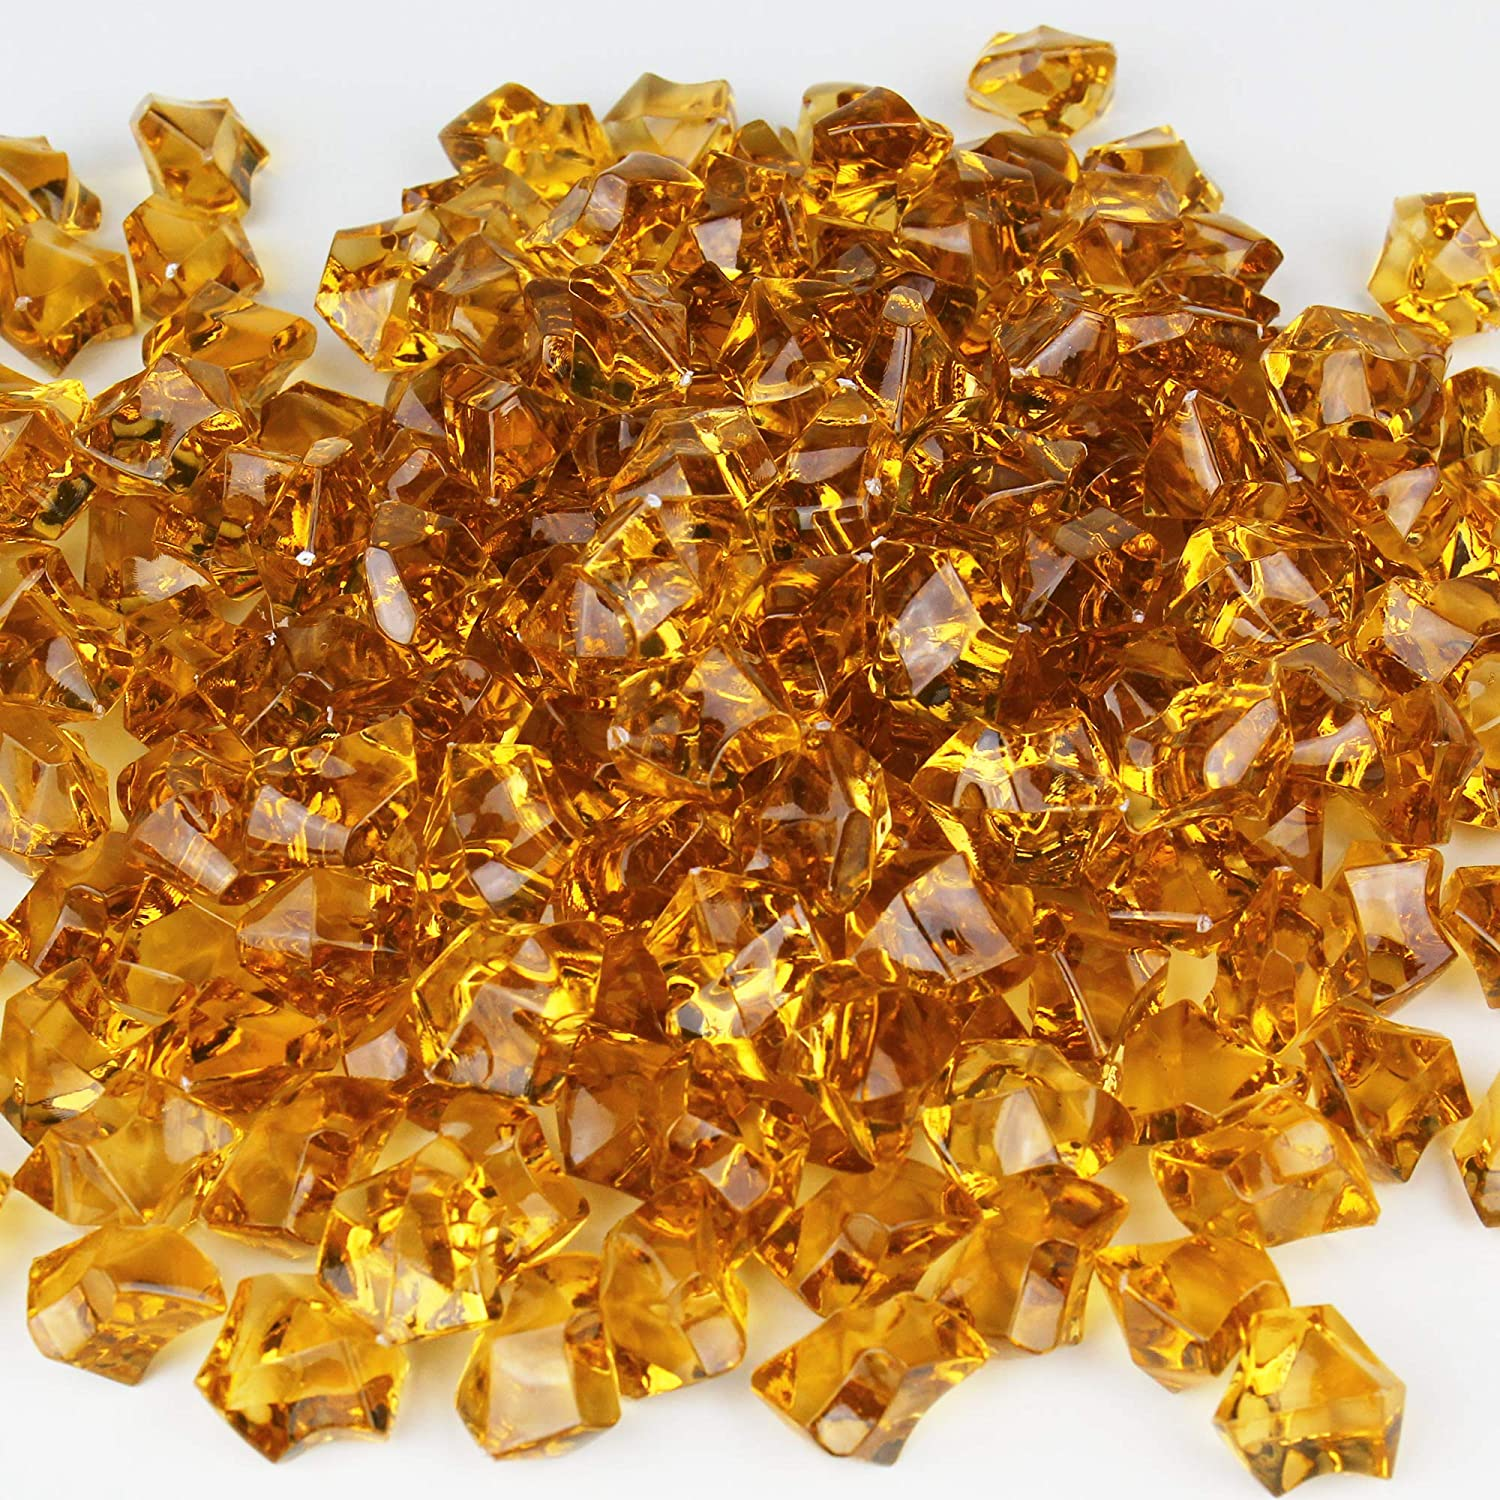 Birthday Decoration CYS EXCEL Acrylic Ice Rocks for Vase Fillers Acrylic Gems for Table Scatters Acrylic Ice Amber, 1 Pound Wedding Event